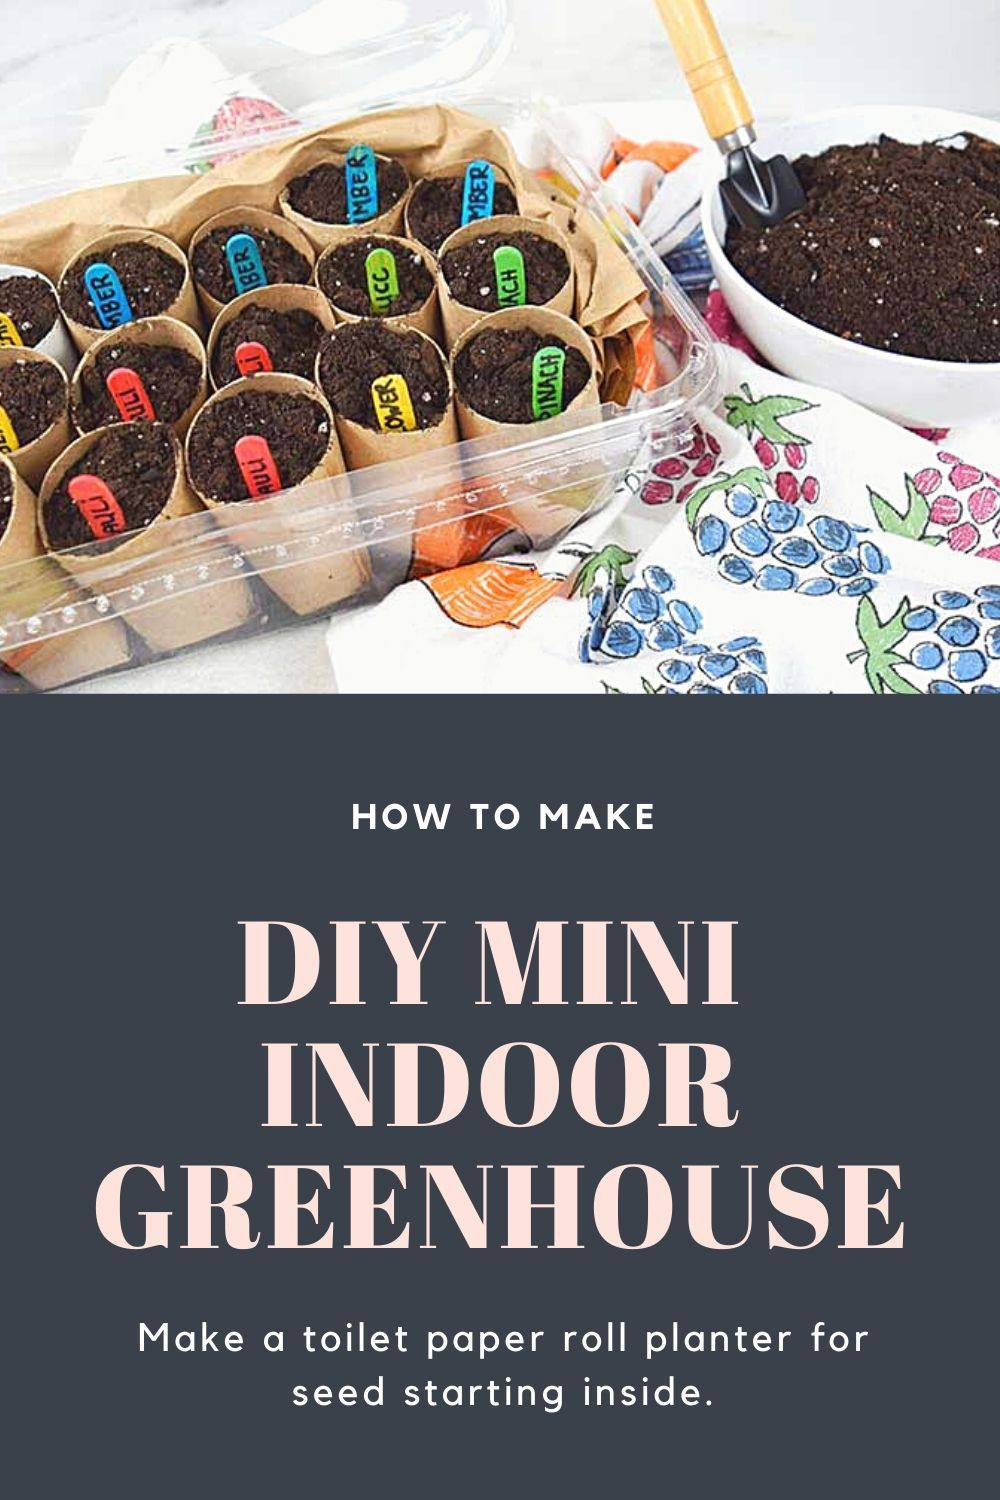 How to make diy mini indoor greenhouse to start seeds